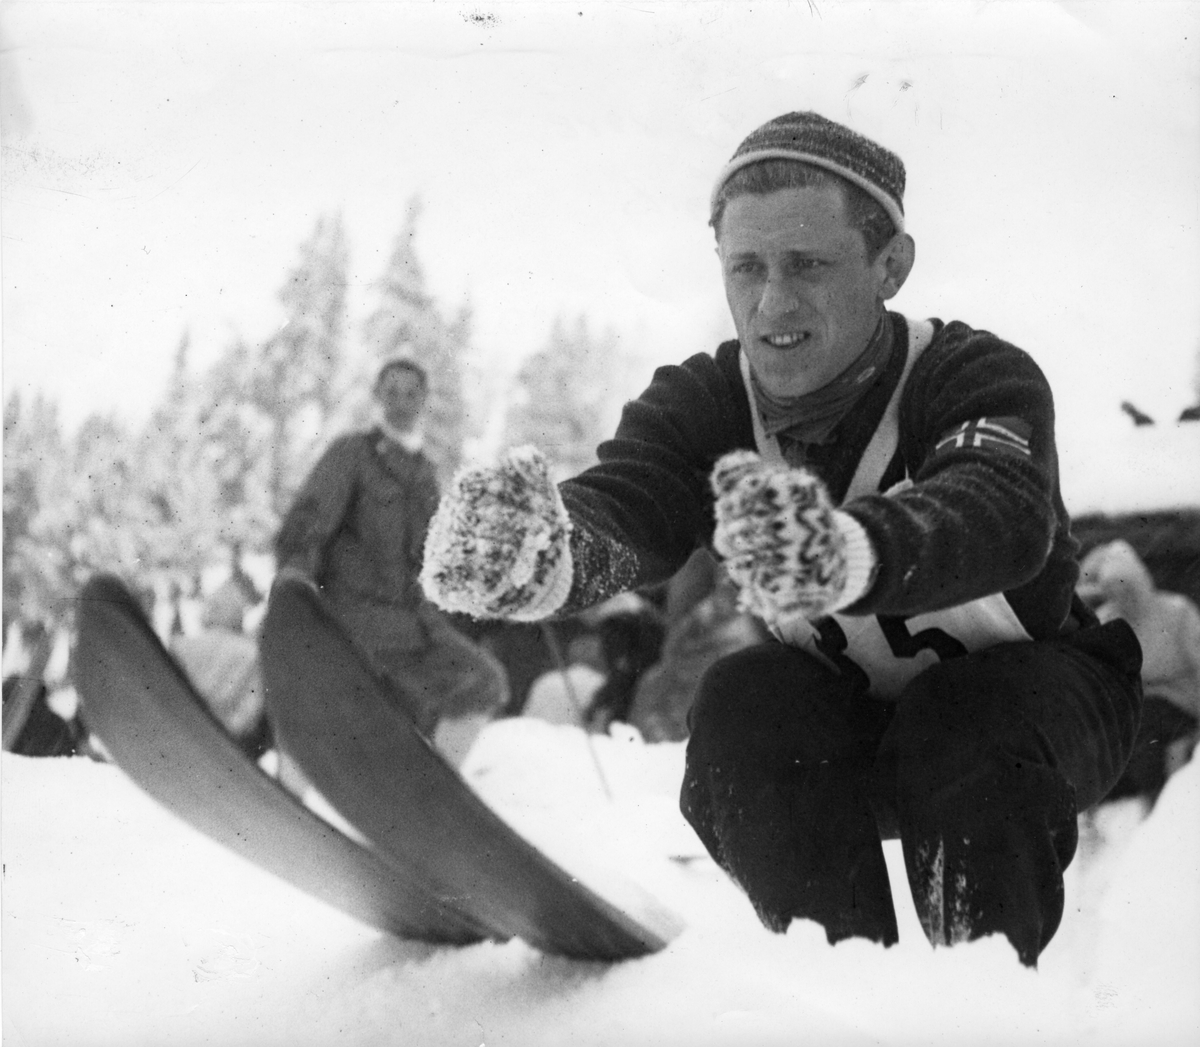 Petter Hugsted i OL i St. Moritz 1948. Petter Hugsted in the Winter Olympics in St. Moritz 1948.